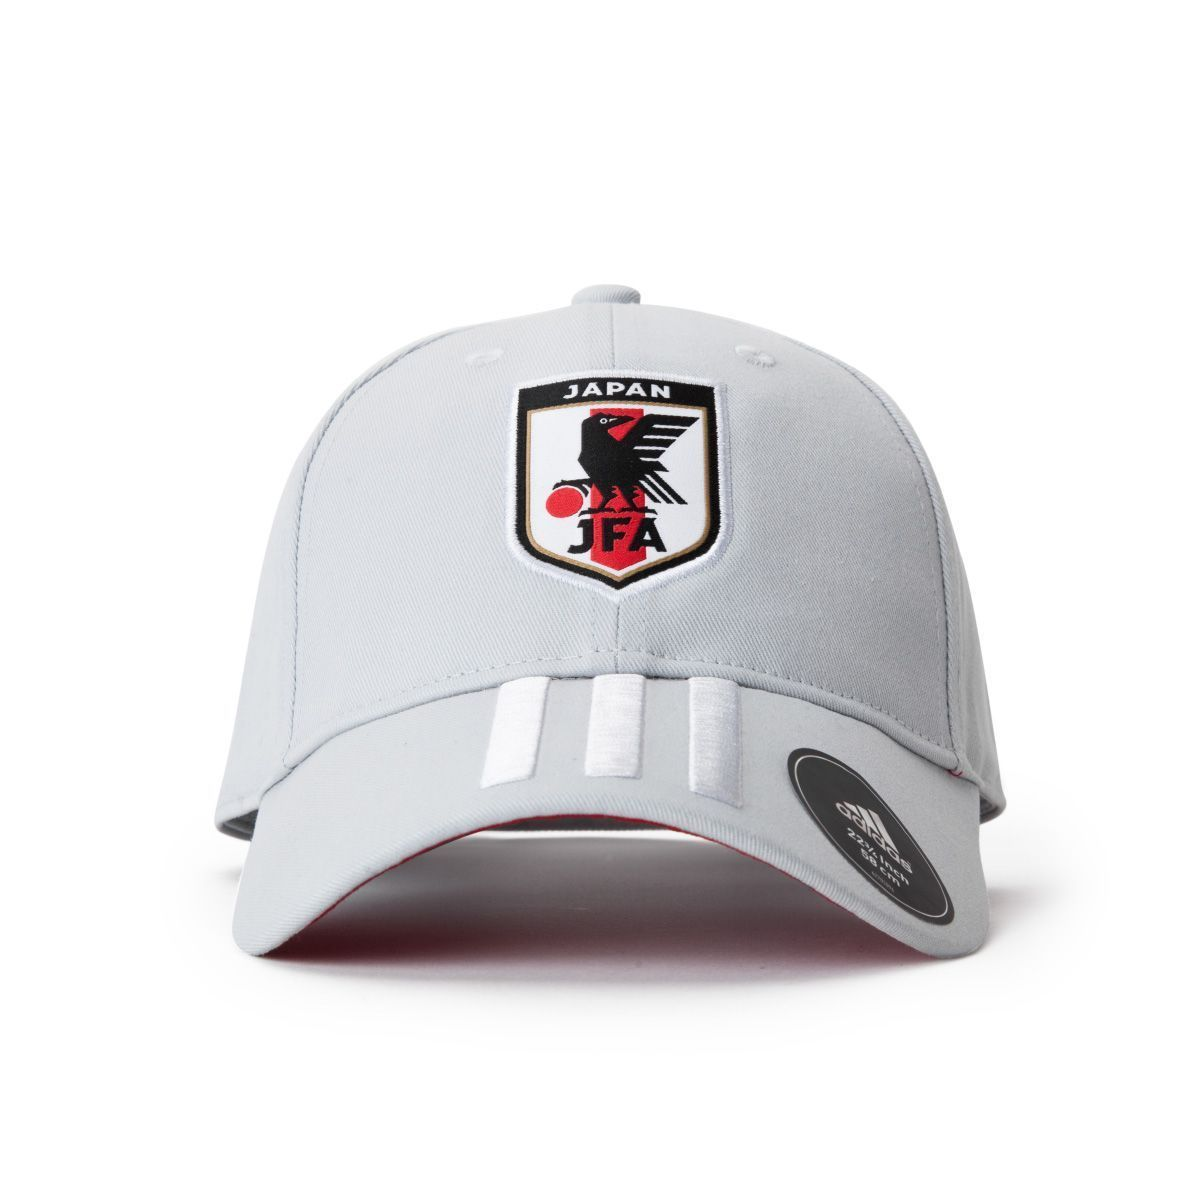 100% Authentic Adidas Japan National Football Soccer Team Cap Hat 2018  World Cup Discount Price 49.99 Free Shipping Buy it Now a2d4b71676e